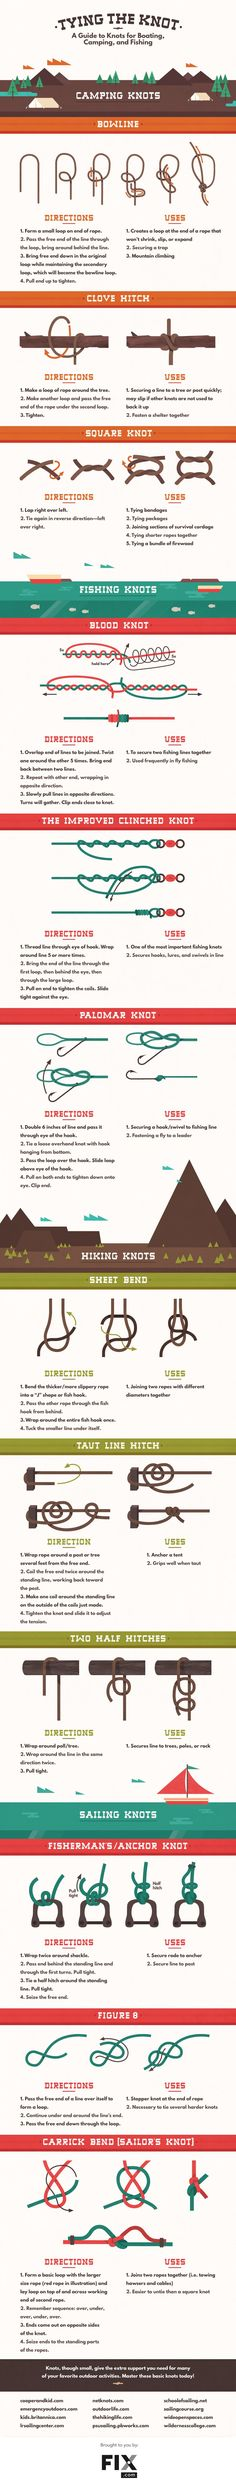 A guide to knots for boating, camping, and fishing